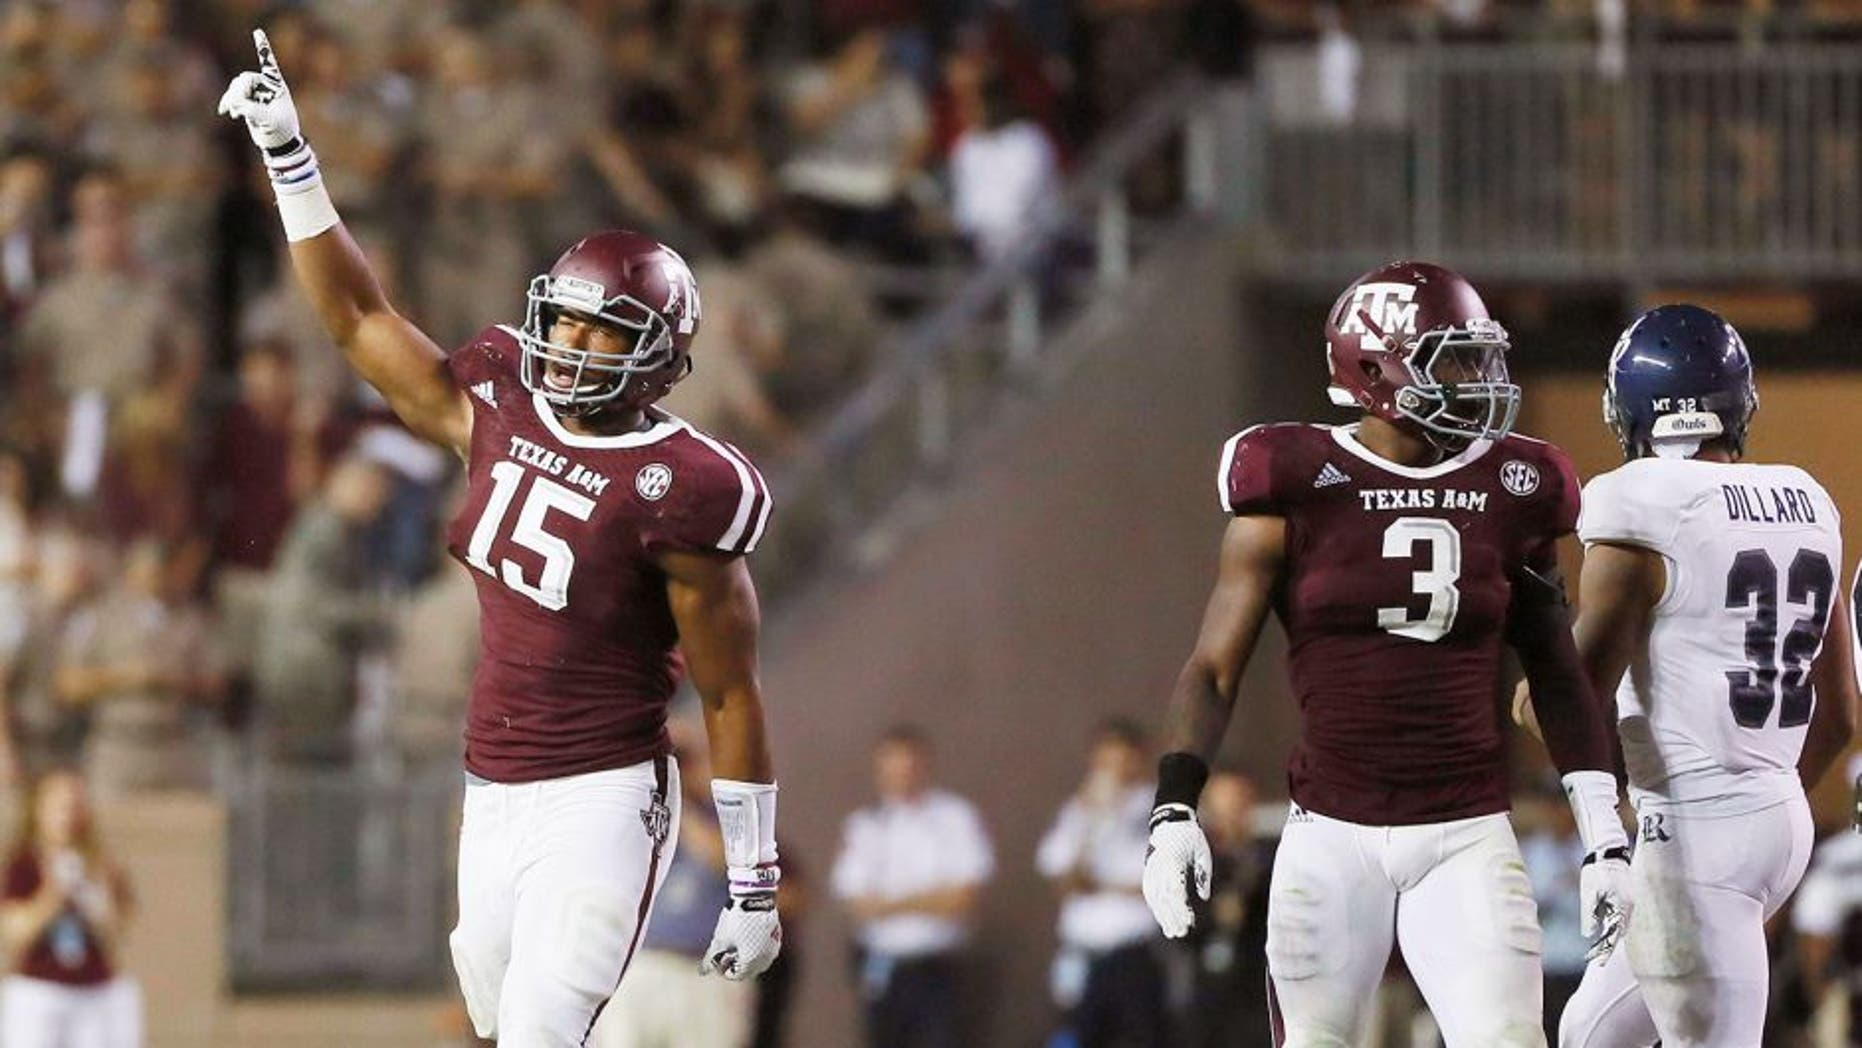 Sep 13, 2014; College Station, TX, USA; Texas A&M Aggies defensive lineman Myles Garrett (15) reacts against the Rice Owls during the second half at Kyle Field. Mandatory Credit: Soobum Im-USA TODAY Sports